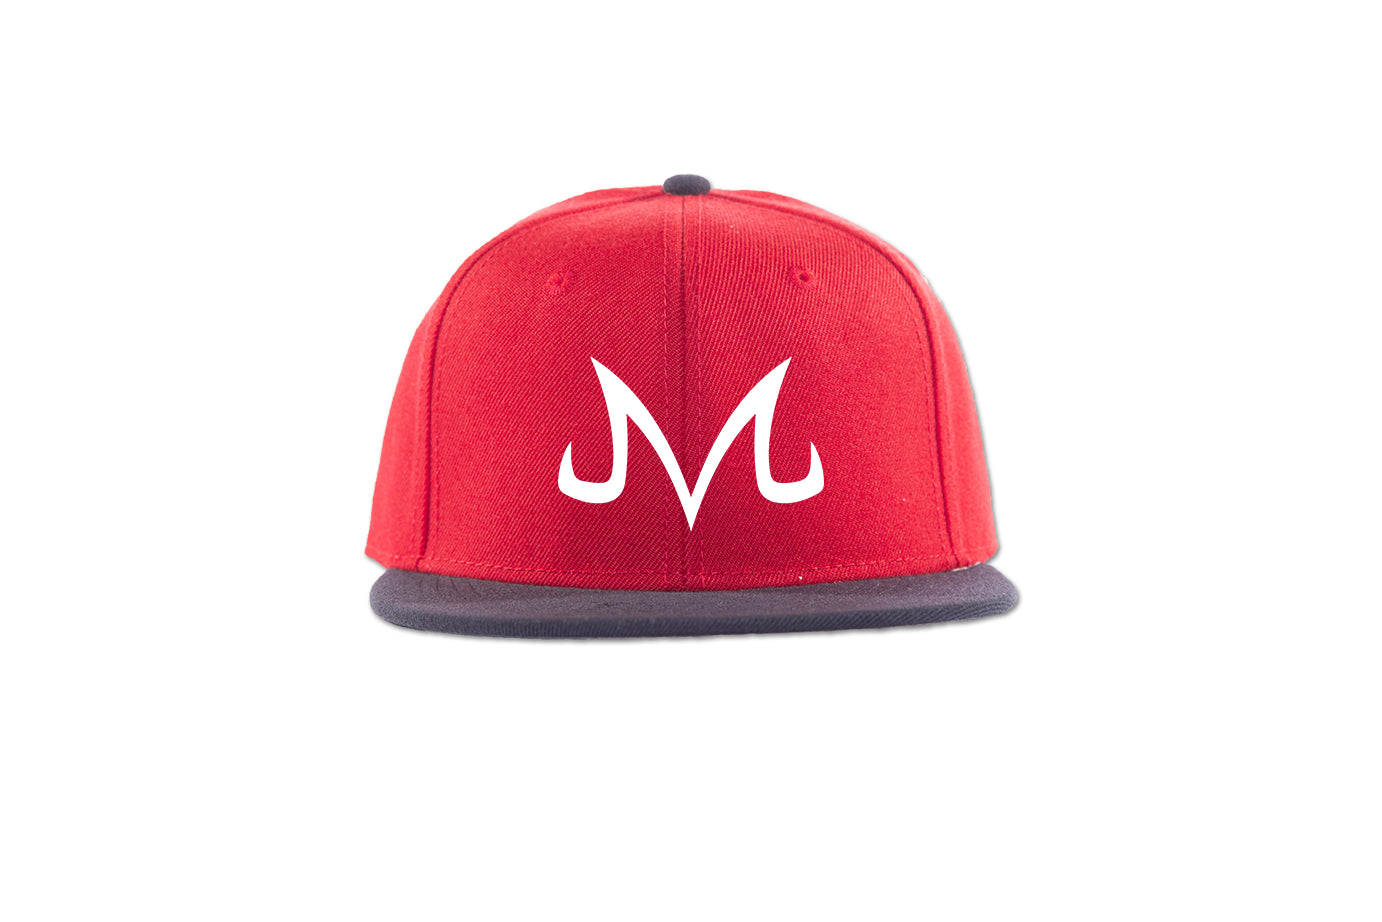 Majin Snapback - Trendy Gear-Nvy/Red/Red-Embroidery - 5